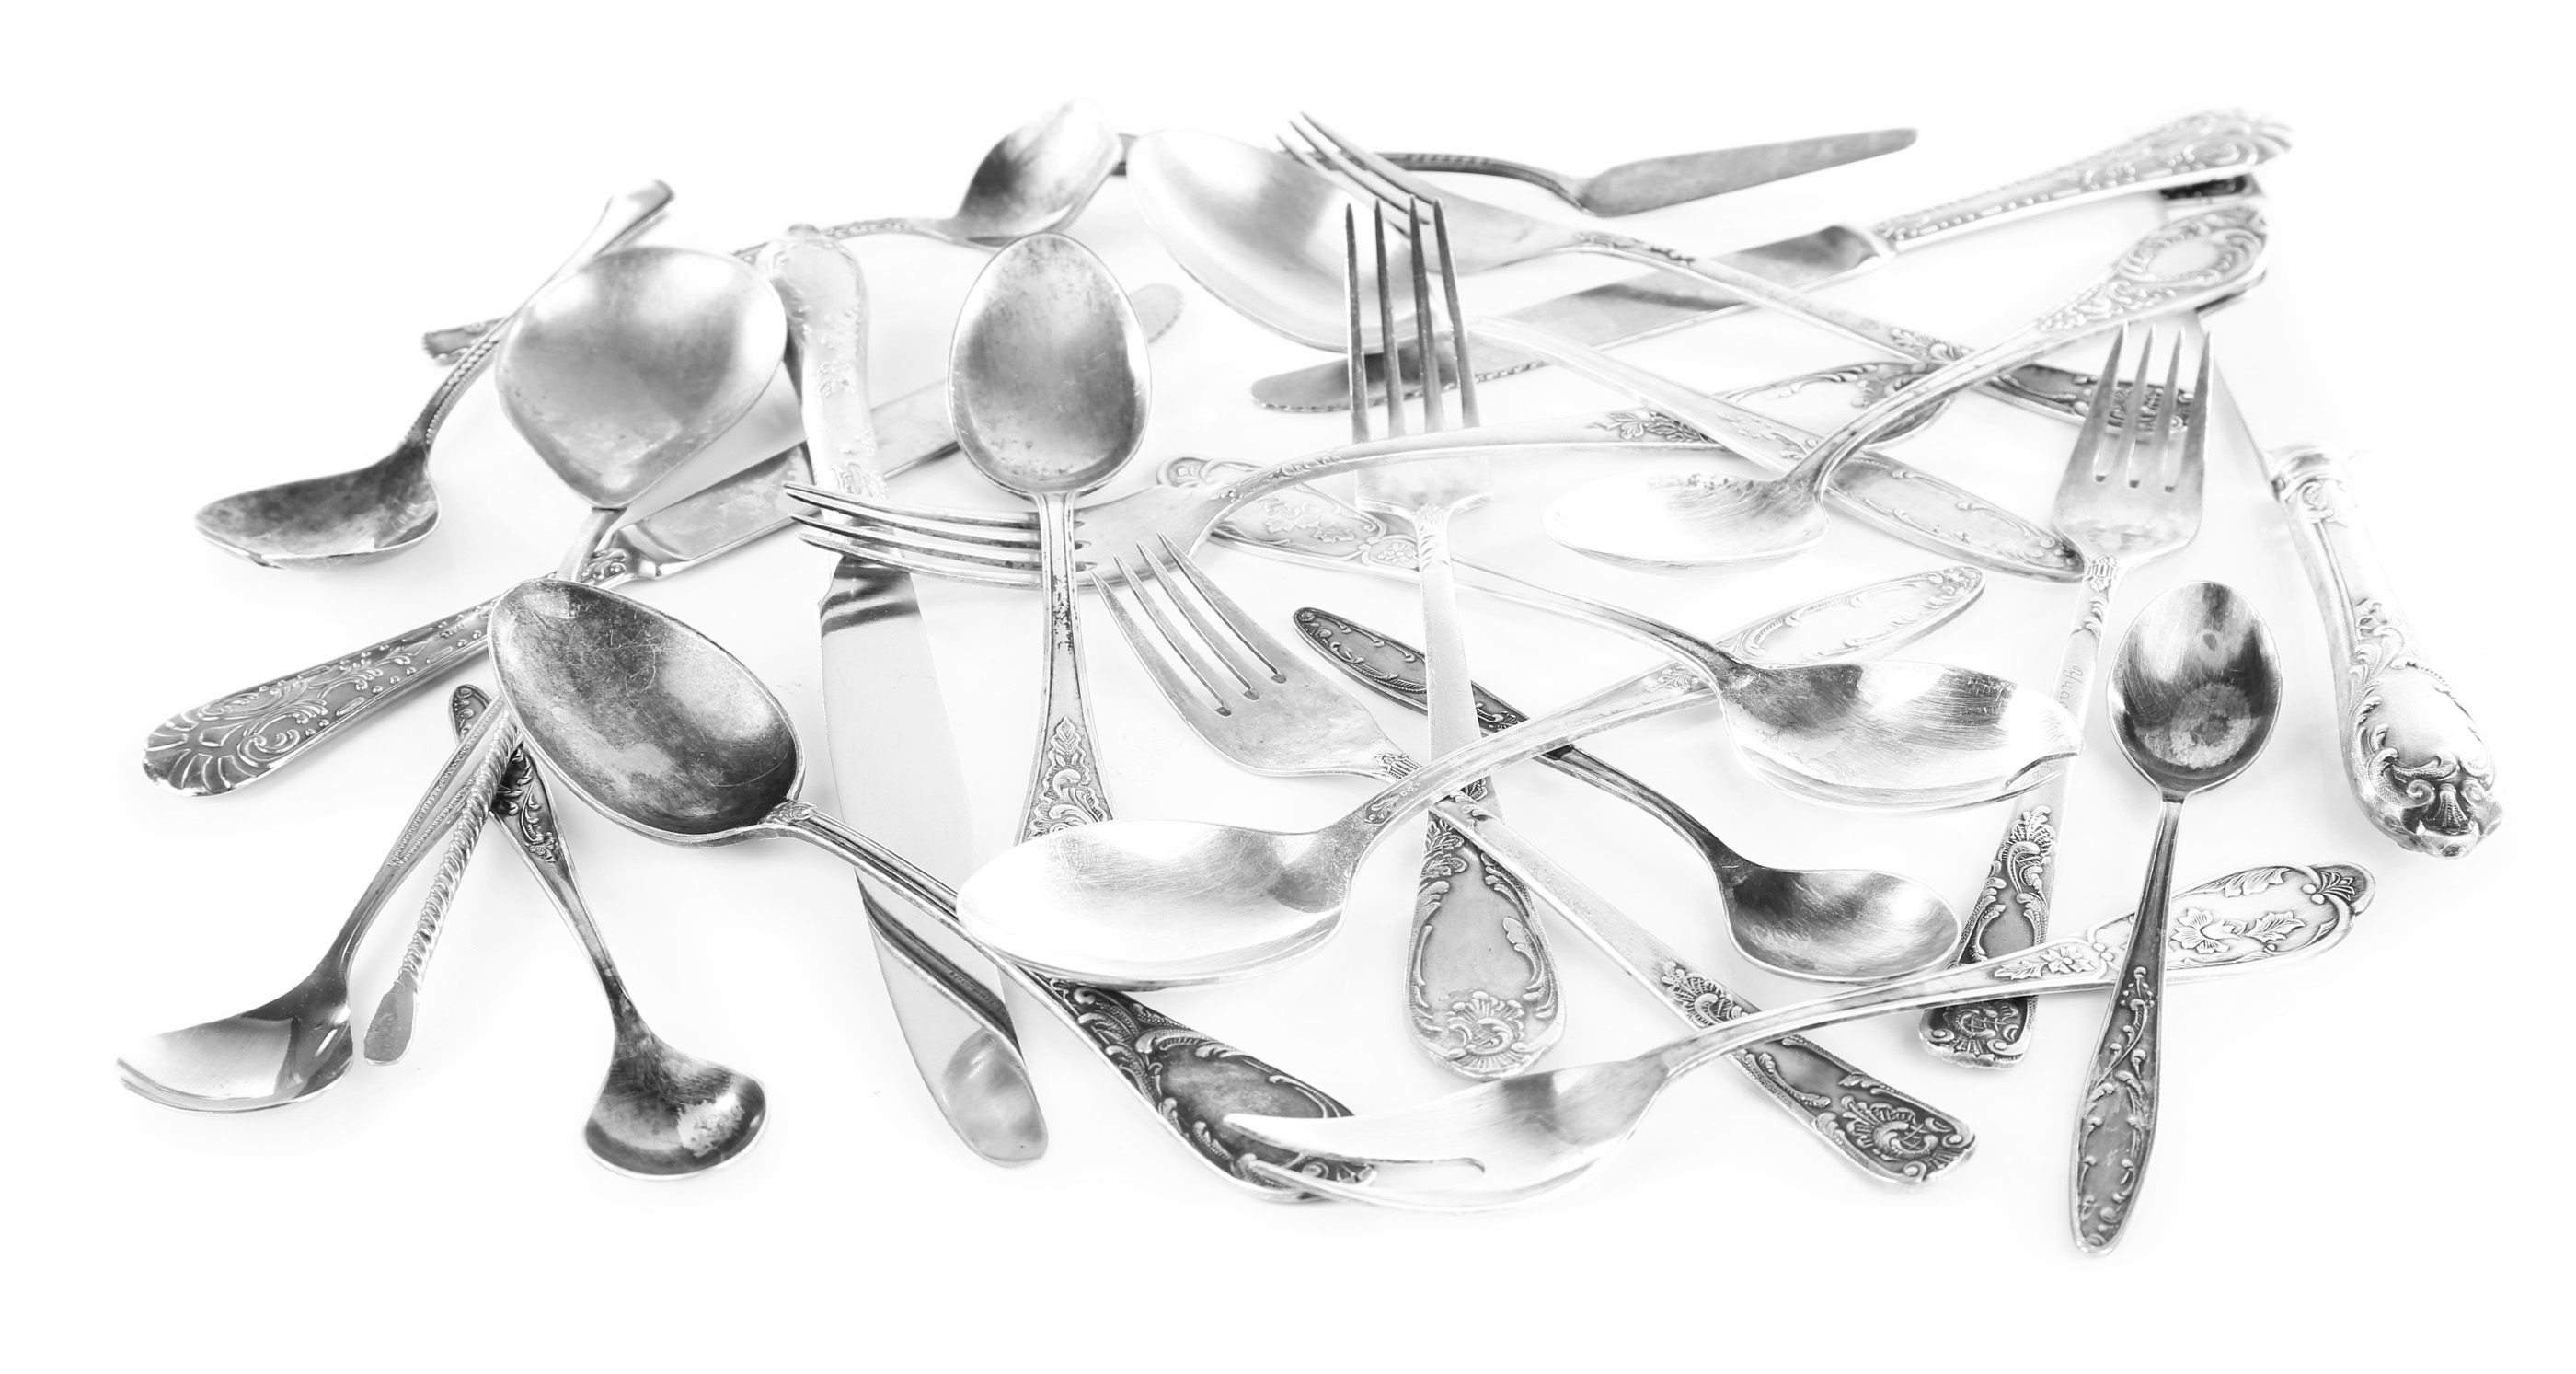 Disordered tableware